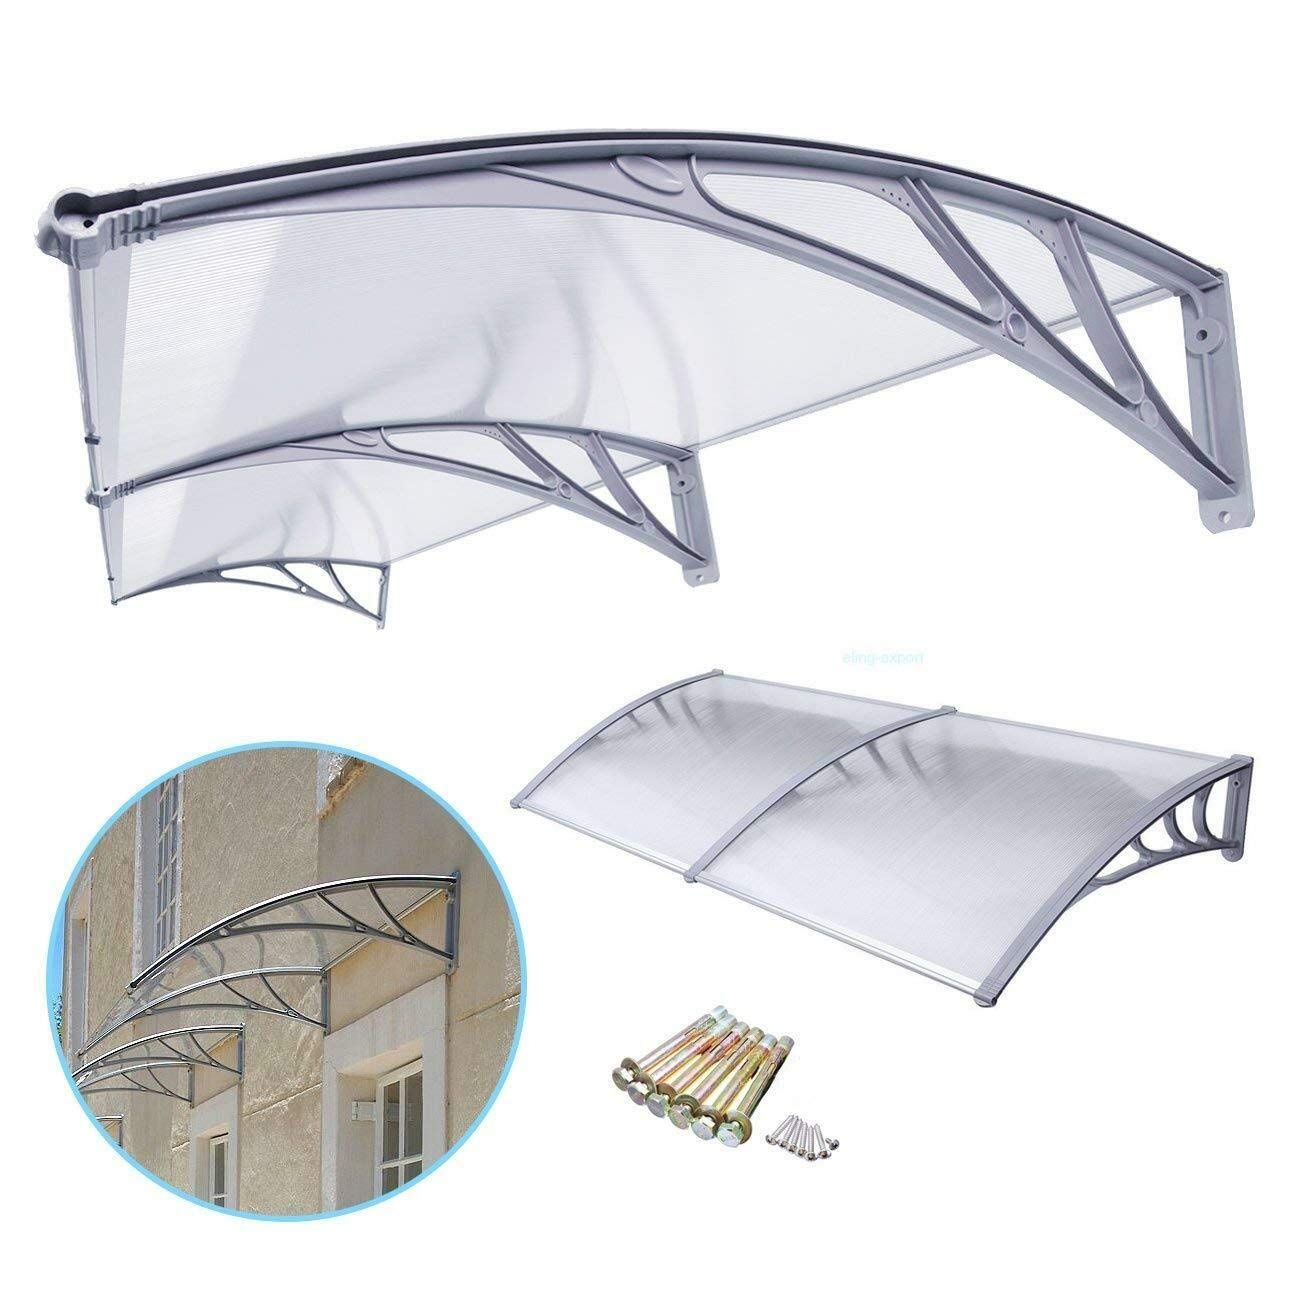 80'' x 40'' Awning Canopy Window Door Complete Sheet Patio Outdoor Polycarbonate by MB-THISTAR